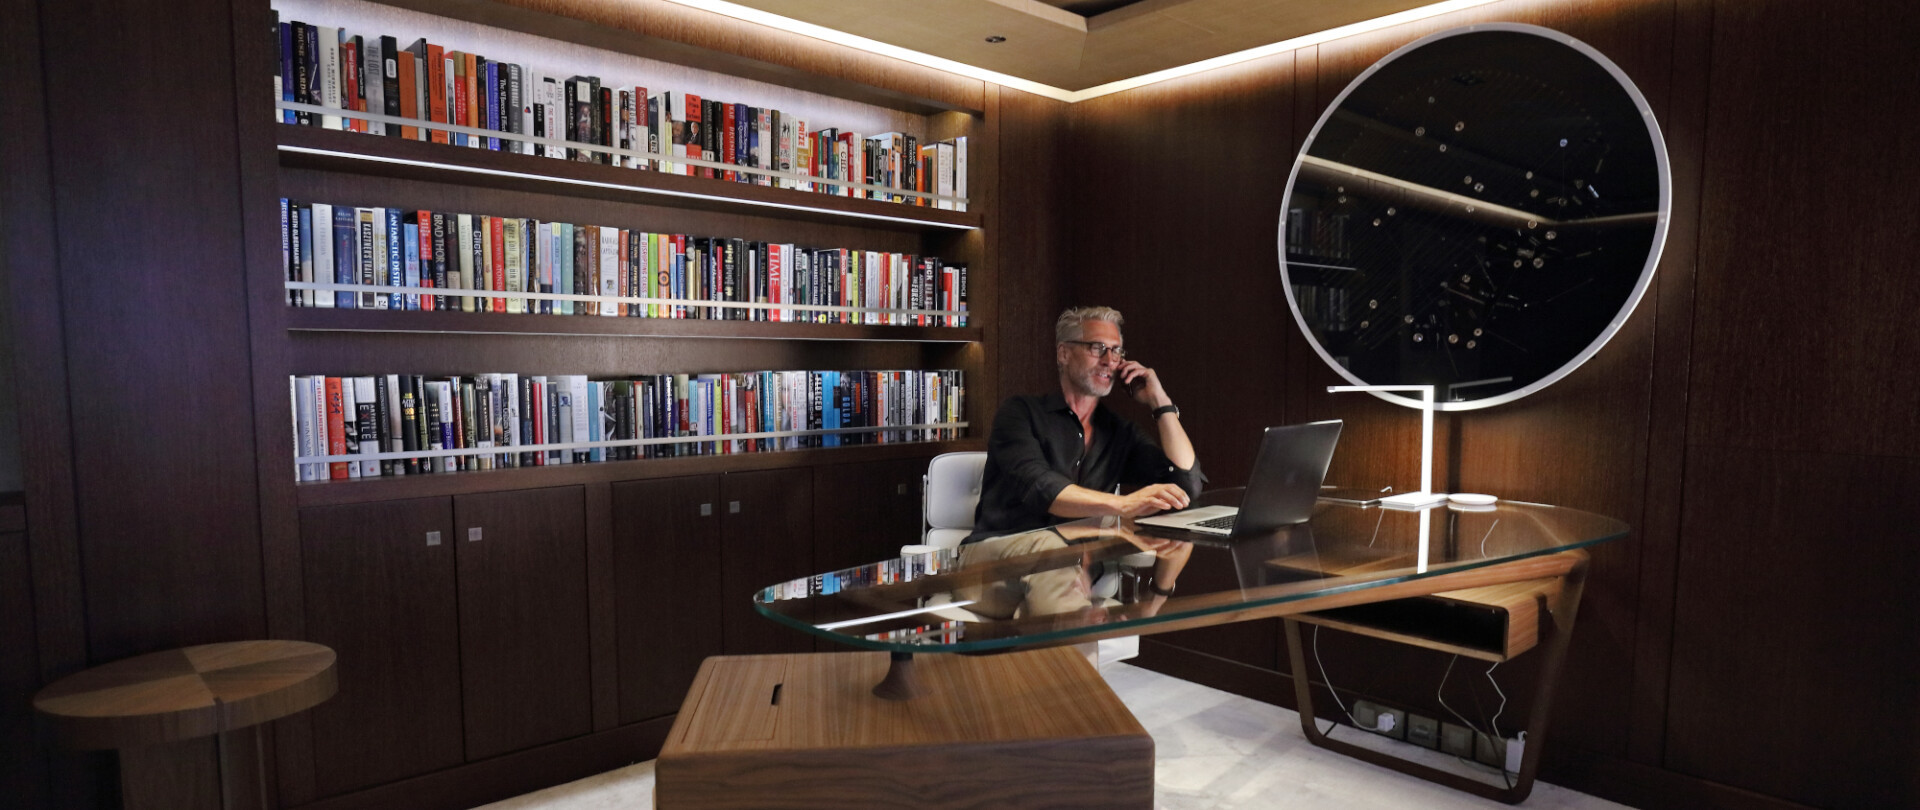 The best yachts for working from home and home schooling photo 1